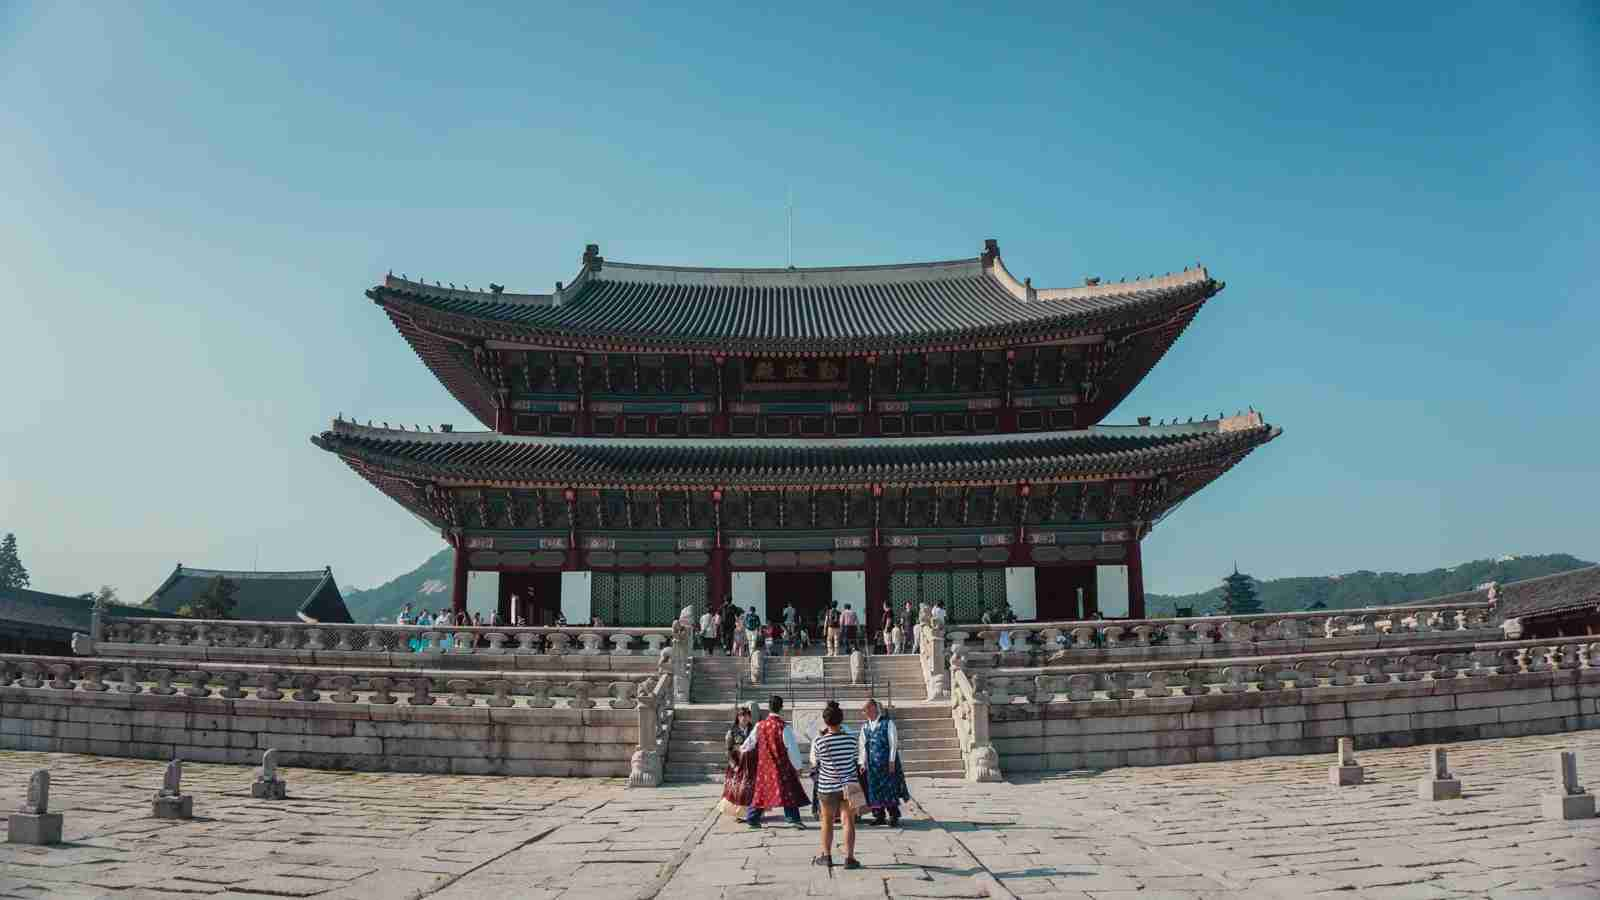 A Buddhist temple in Seoul, South Korea. (Photo by Yeo Khee / Unsplash)